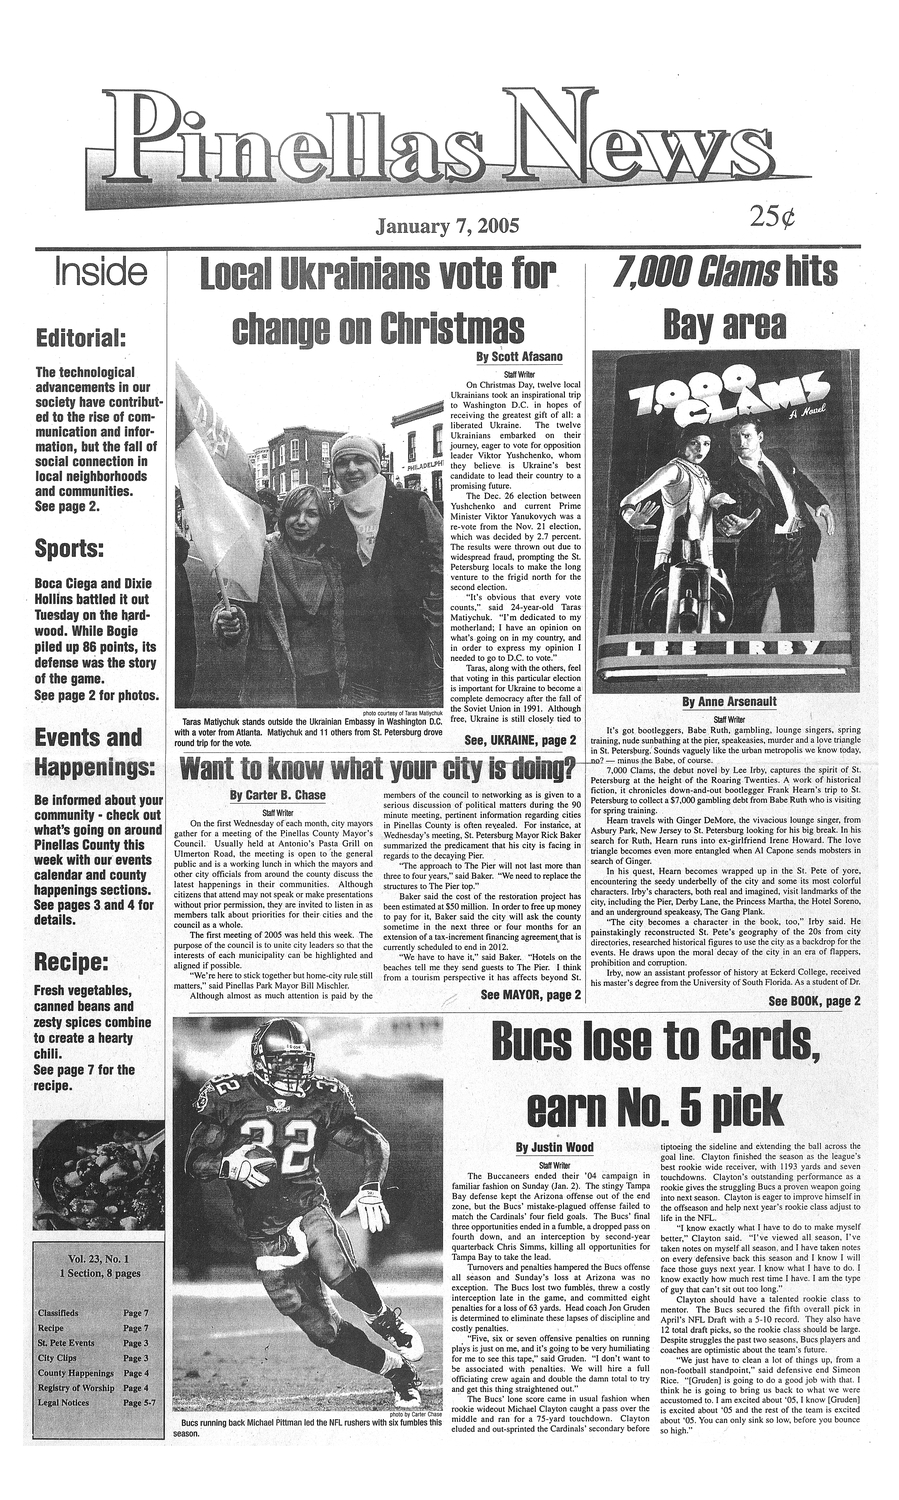 Pinellas news. January 7, 2005. - page 1